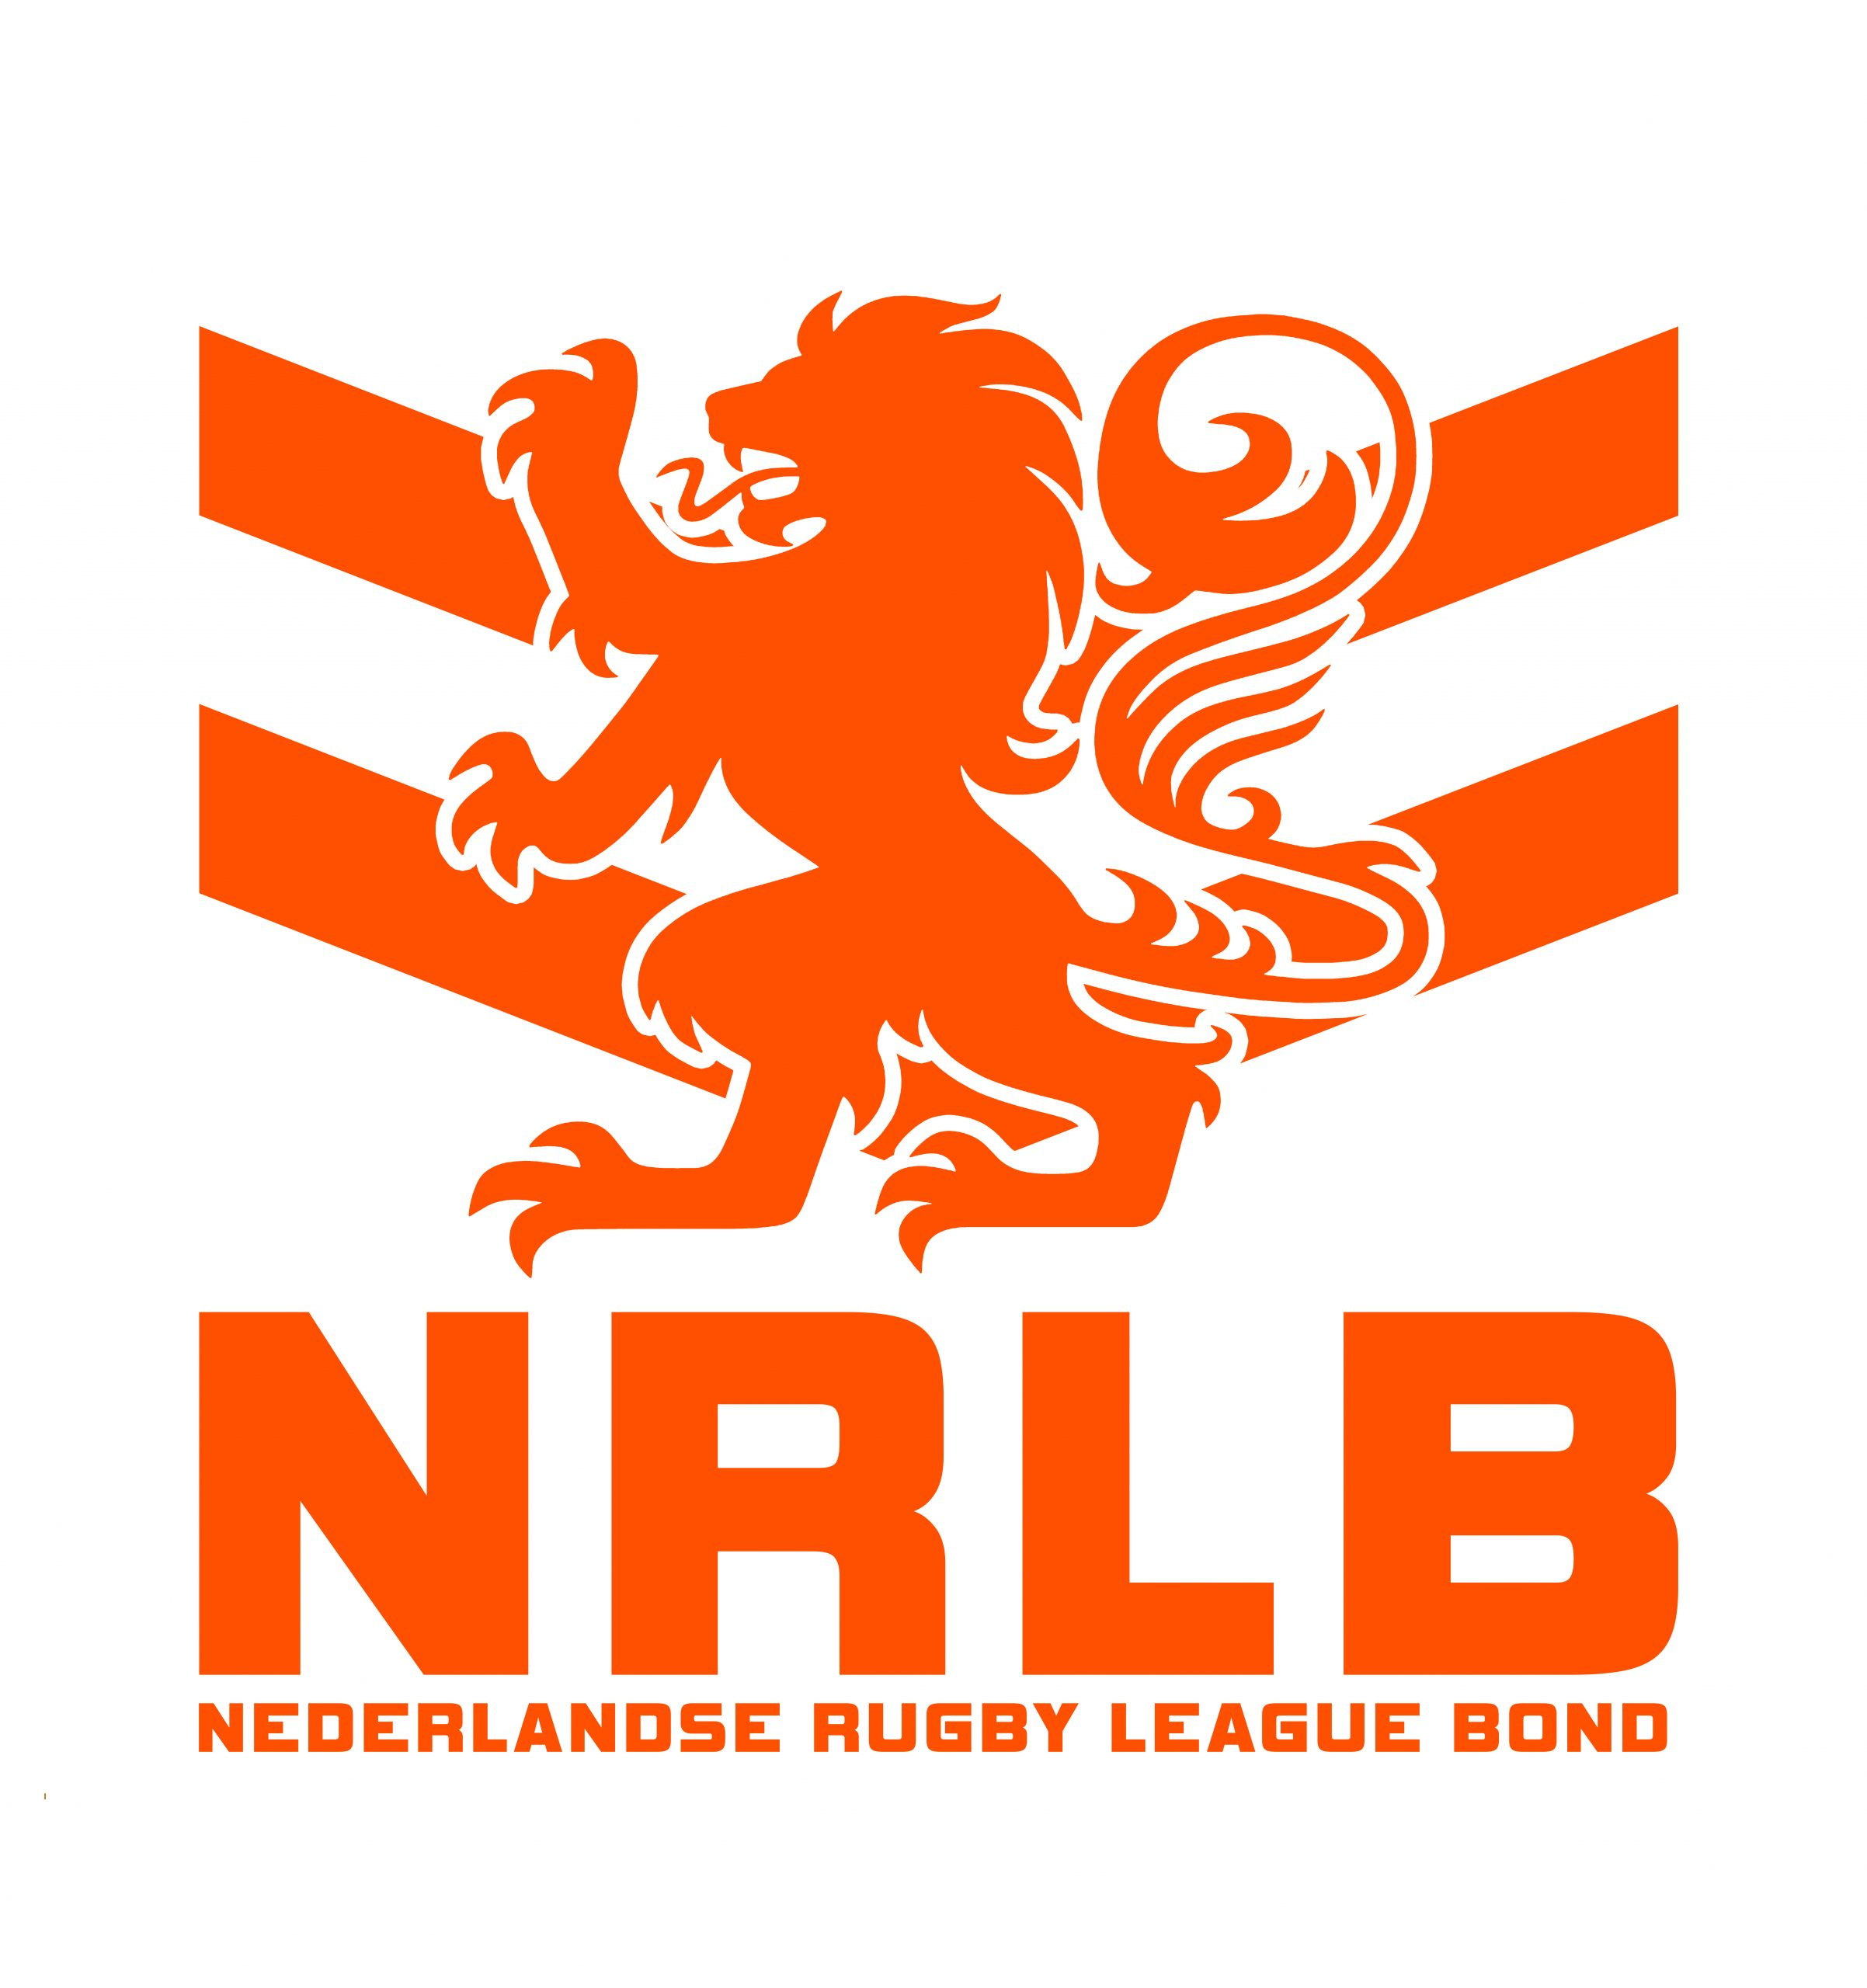 Home of Dutch Lions